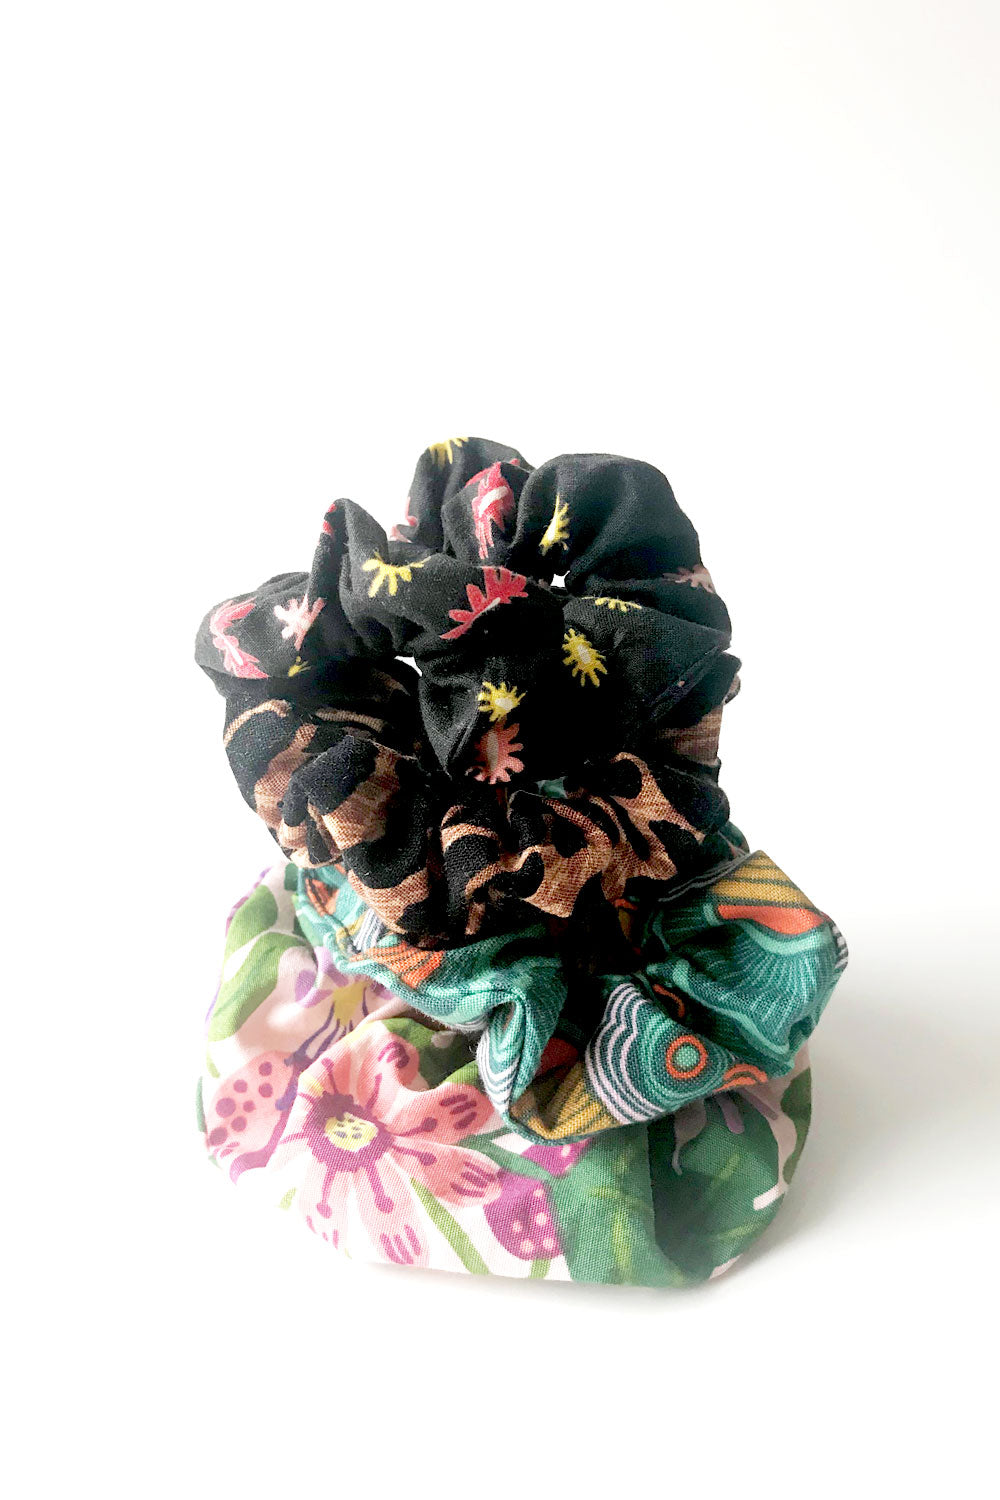 a stack of hair bow and regular hair scrunchies in various colors and prints